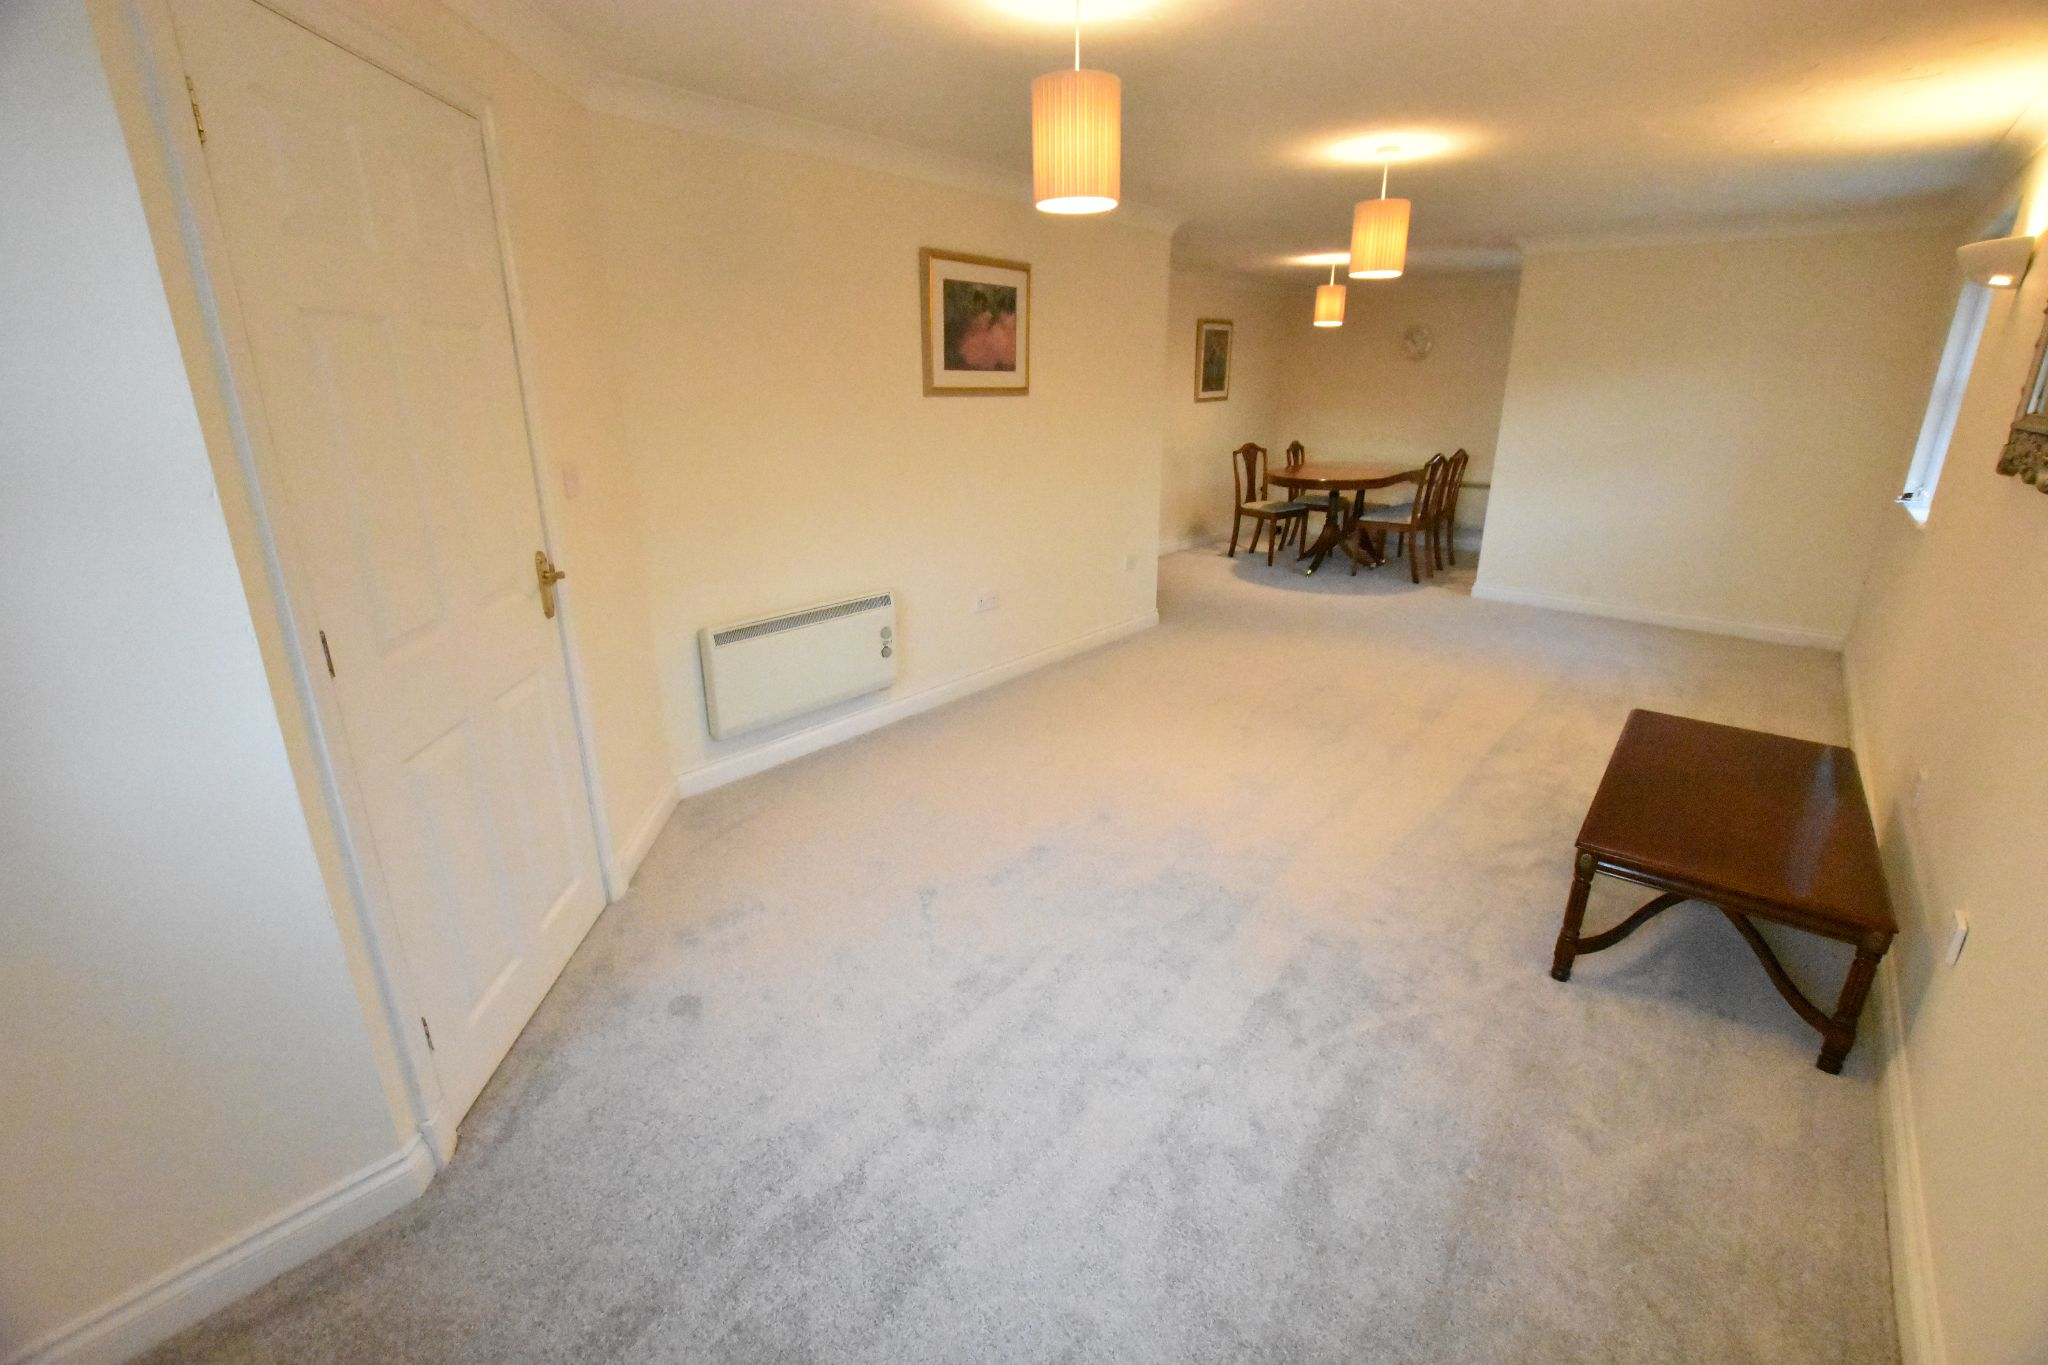 2 bedroom apartment flat/apartment Sold STC in Preston - Lounge